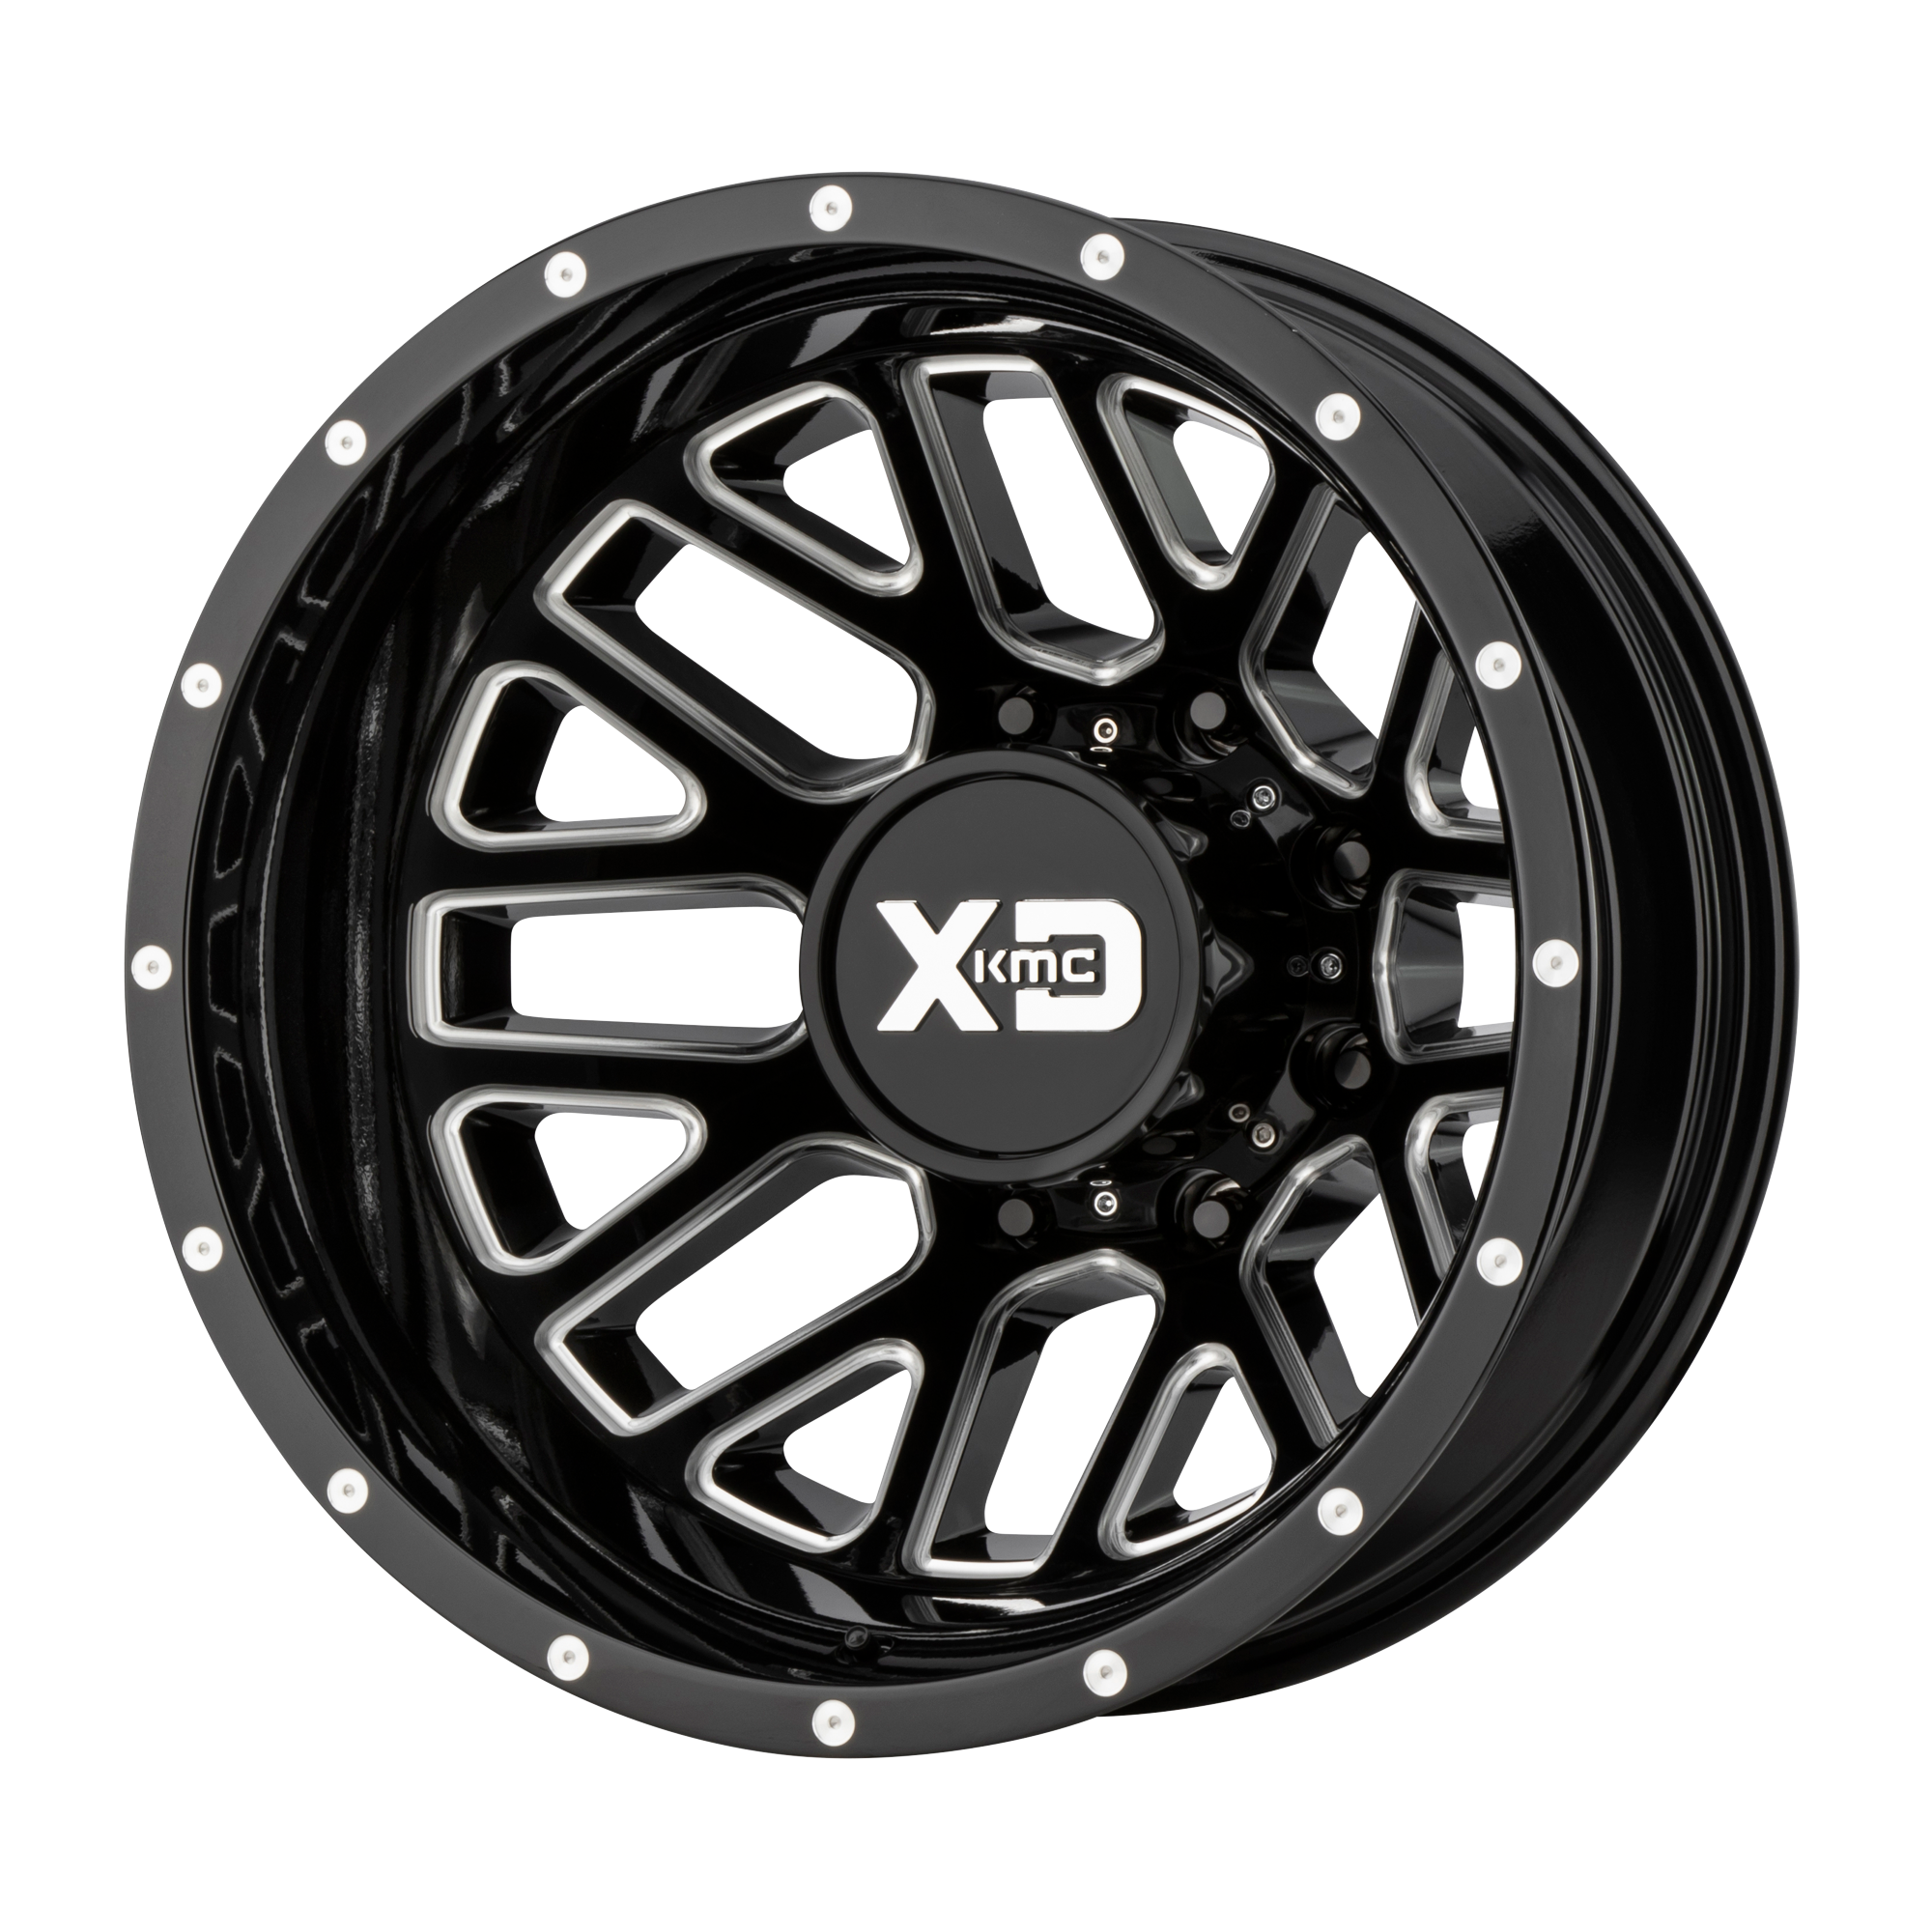 XD SERIES XD843 GRENADE DUALLY hliníkové disky 6,5x17 8x165,1 ET-140 Gloss Black Milled - Rear